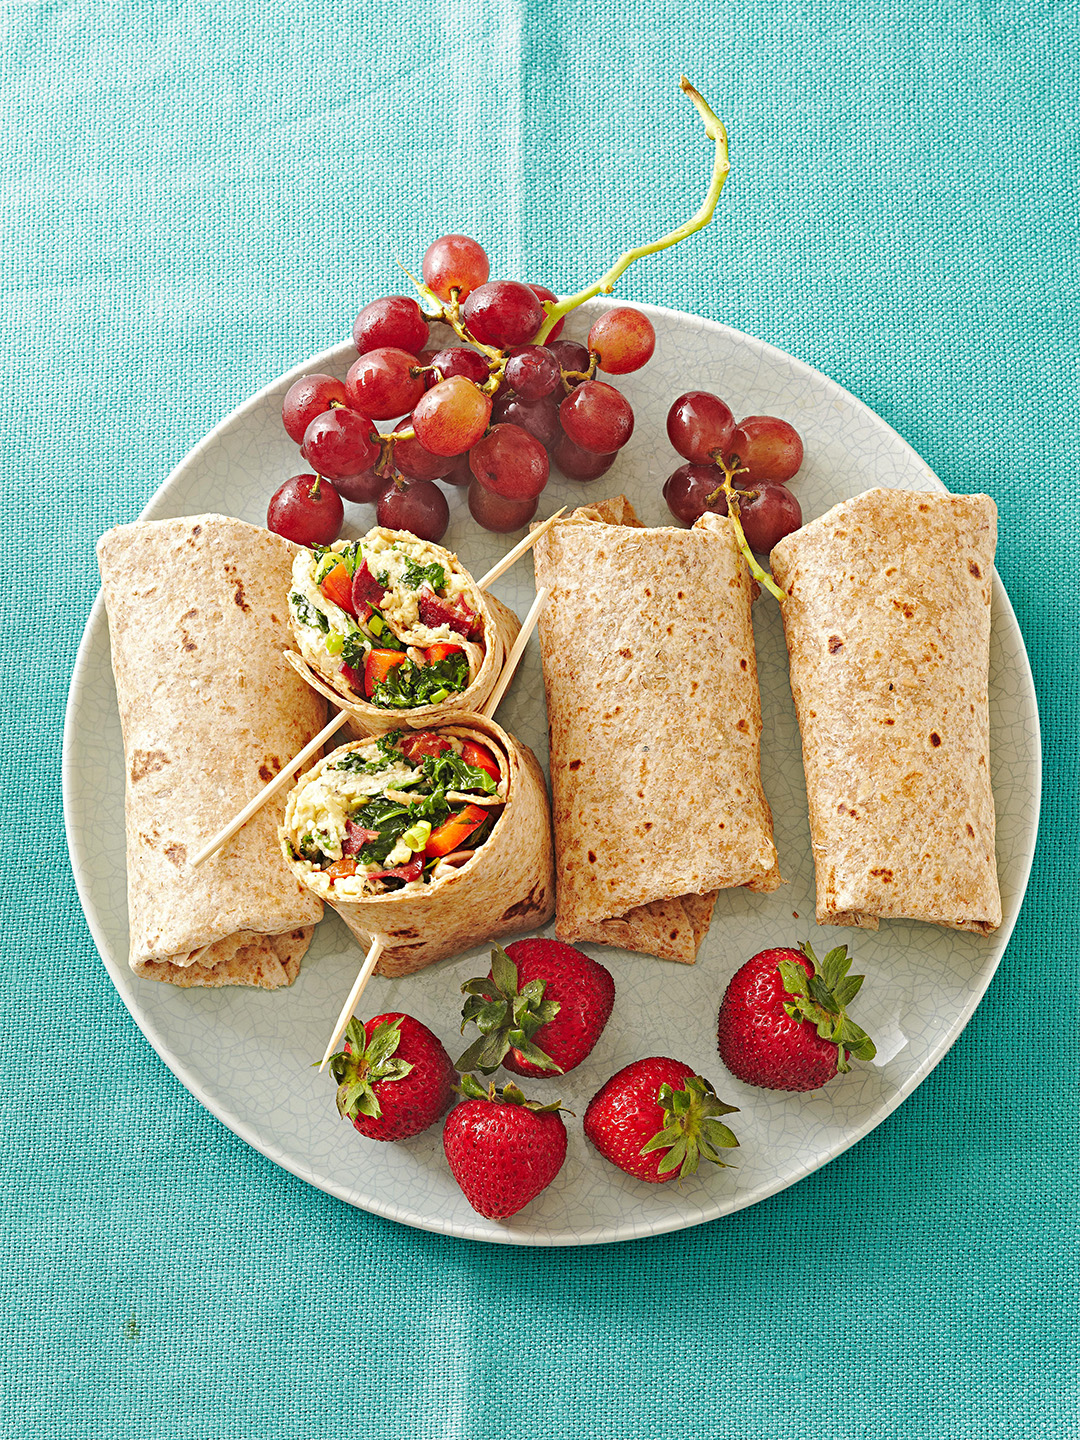 Greens-and-Bacon Omelet Wraps with grapes and strawberries